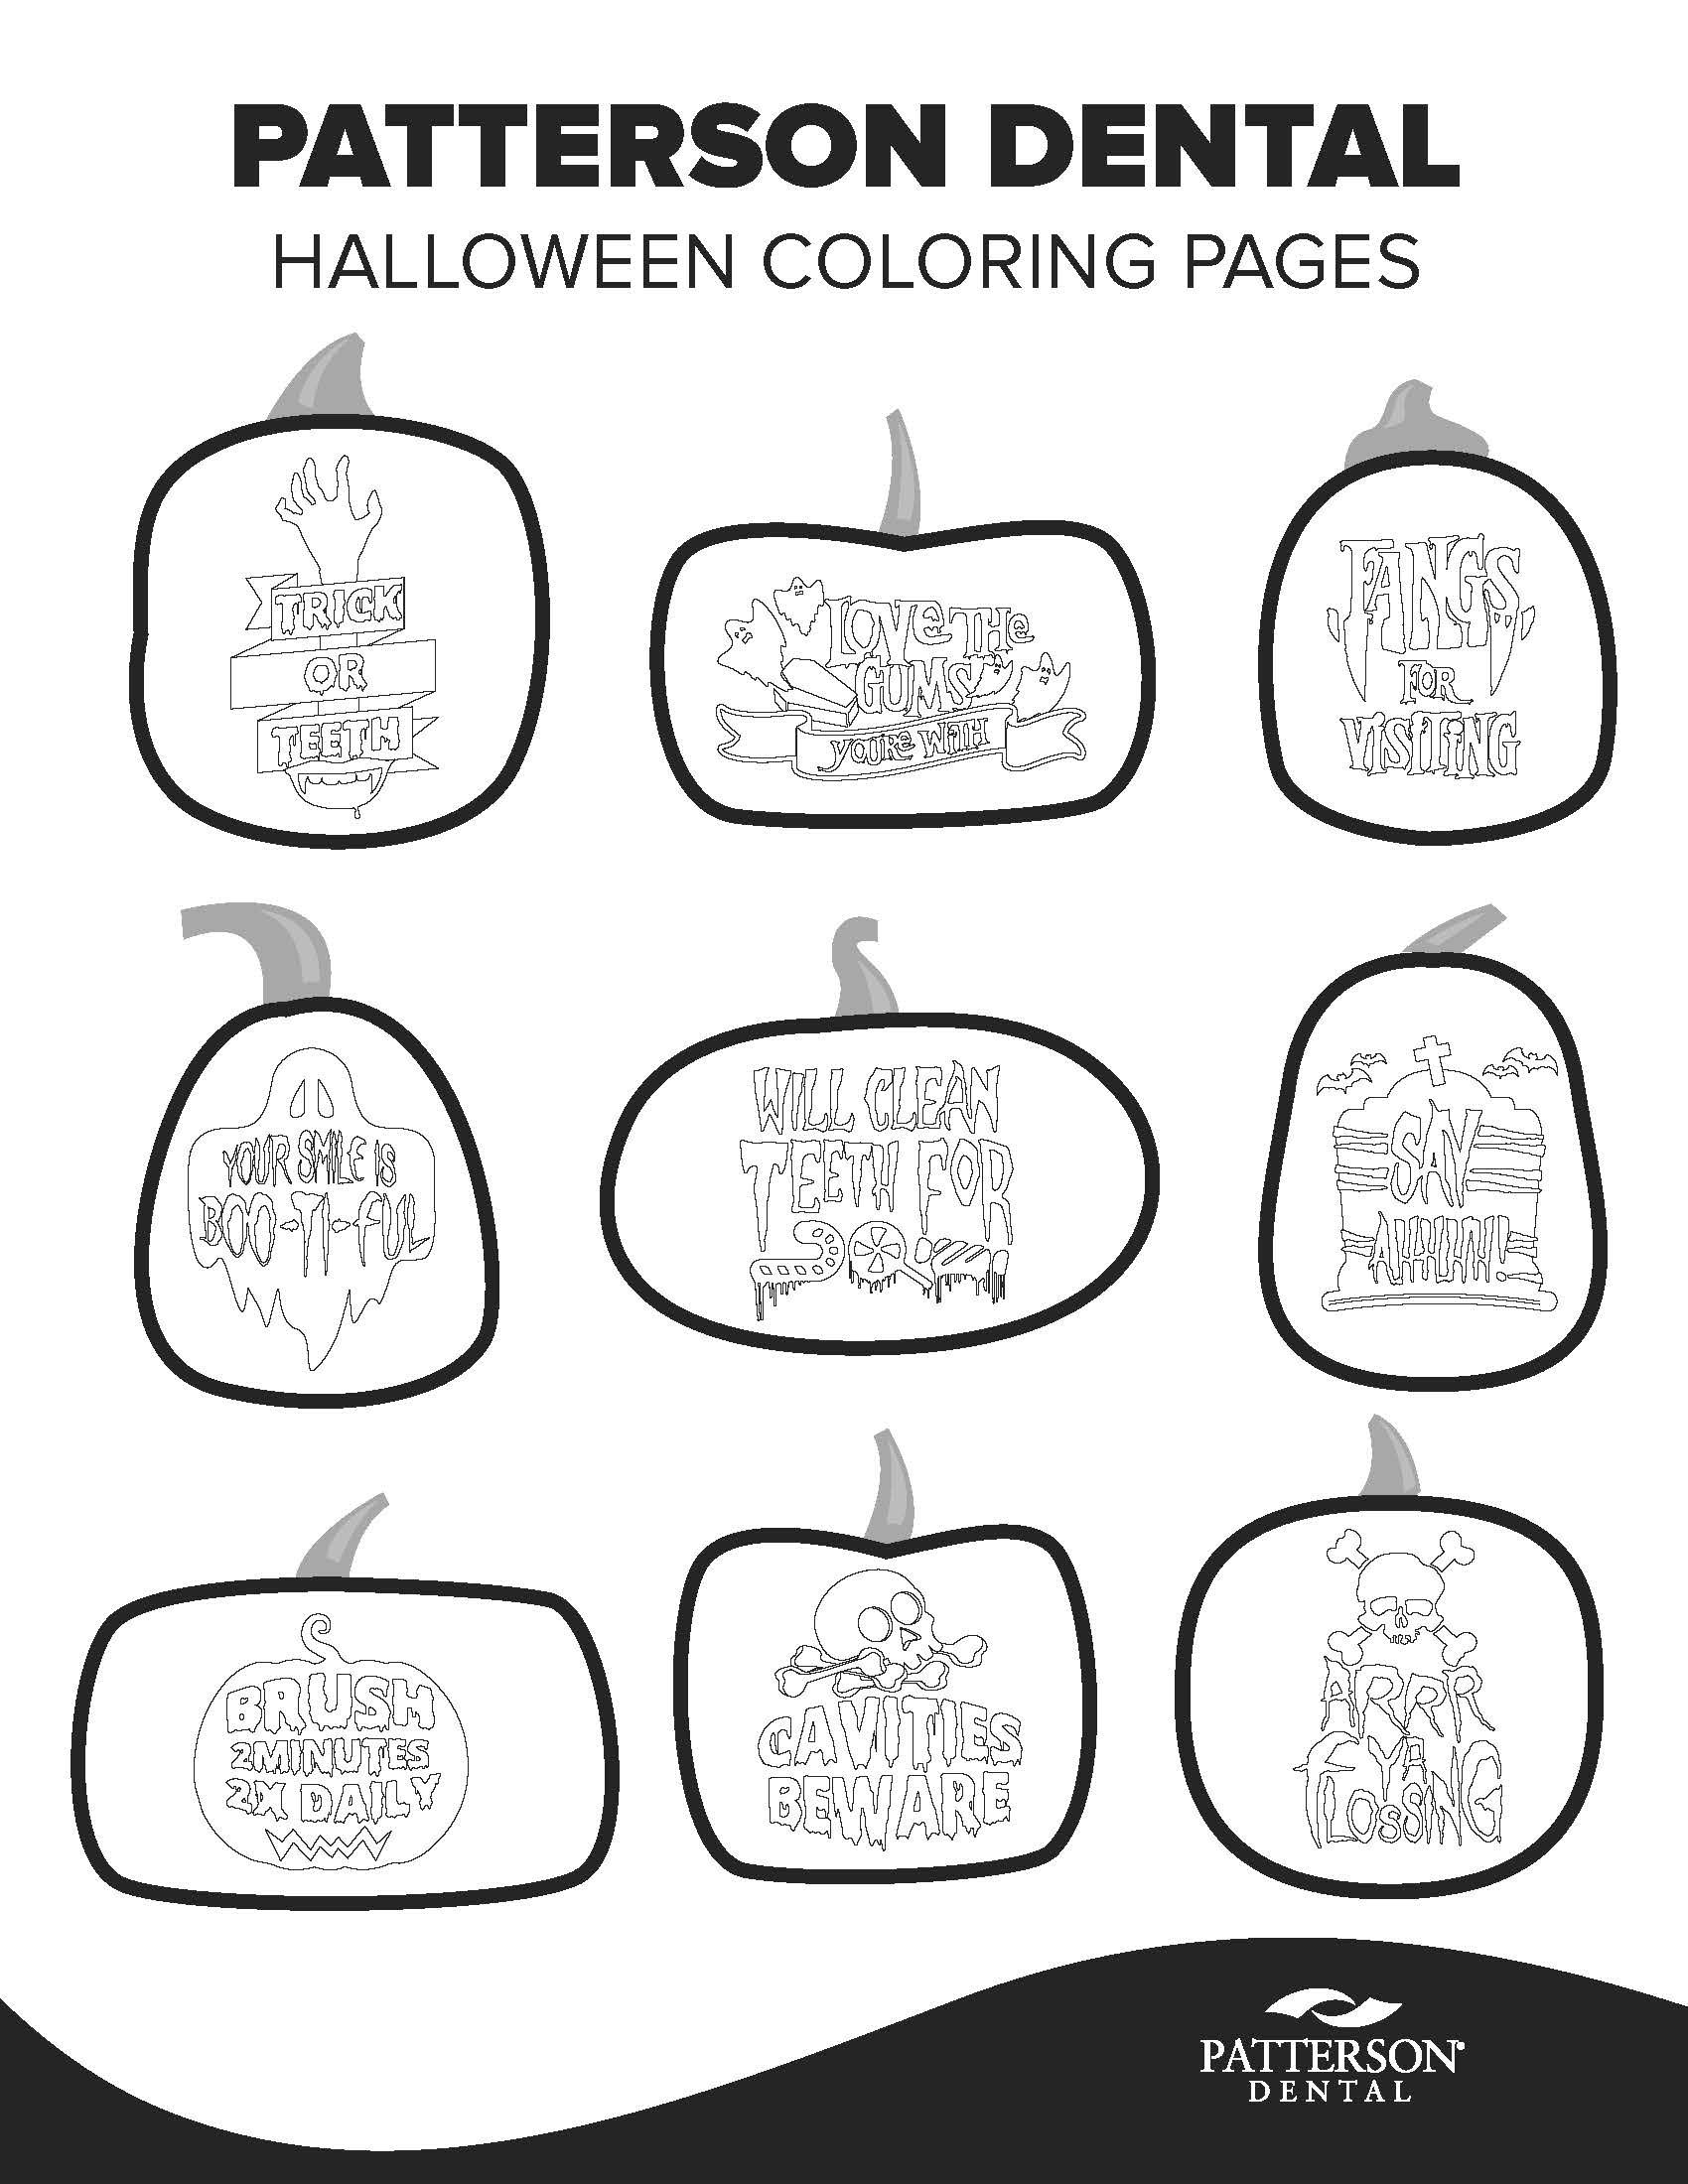 9 Free Halloween Coloring Pages Featuring Punny Dental Phrases